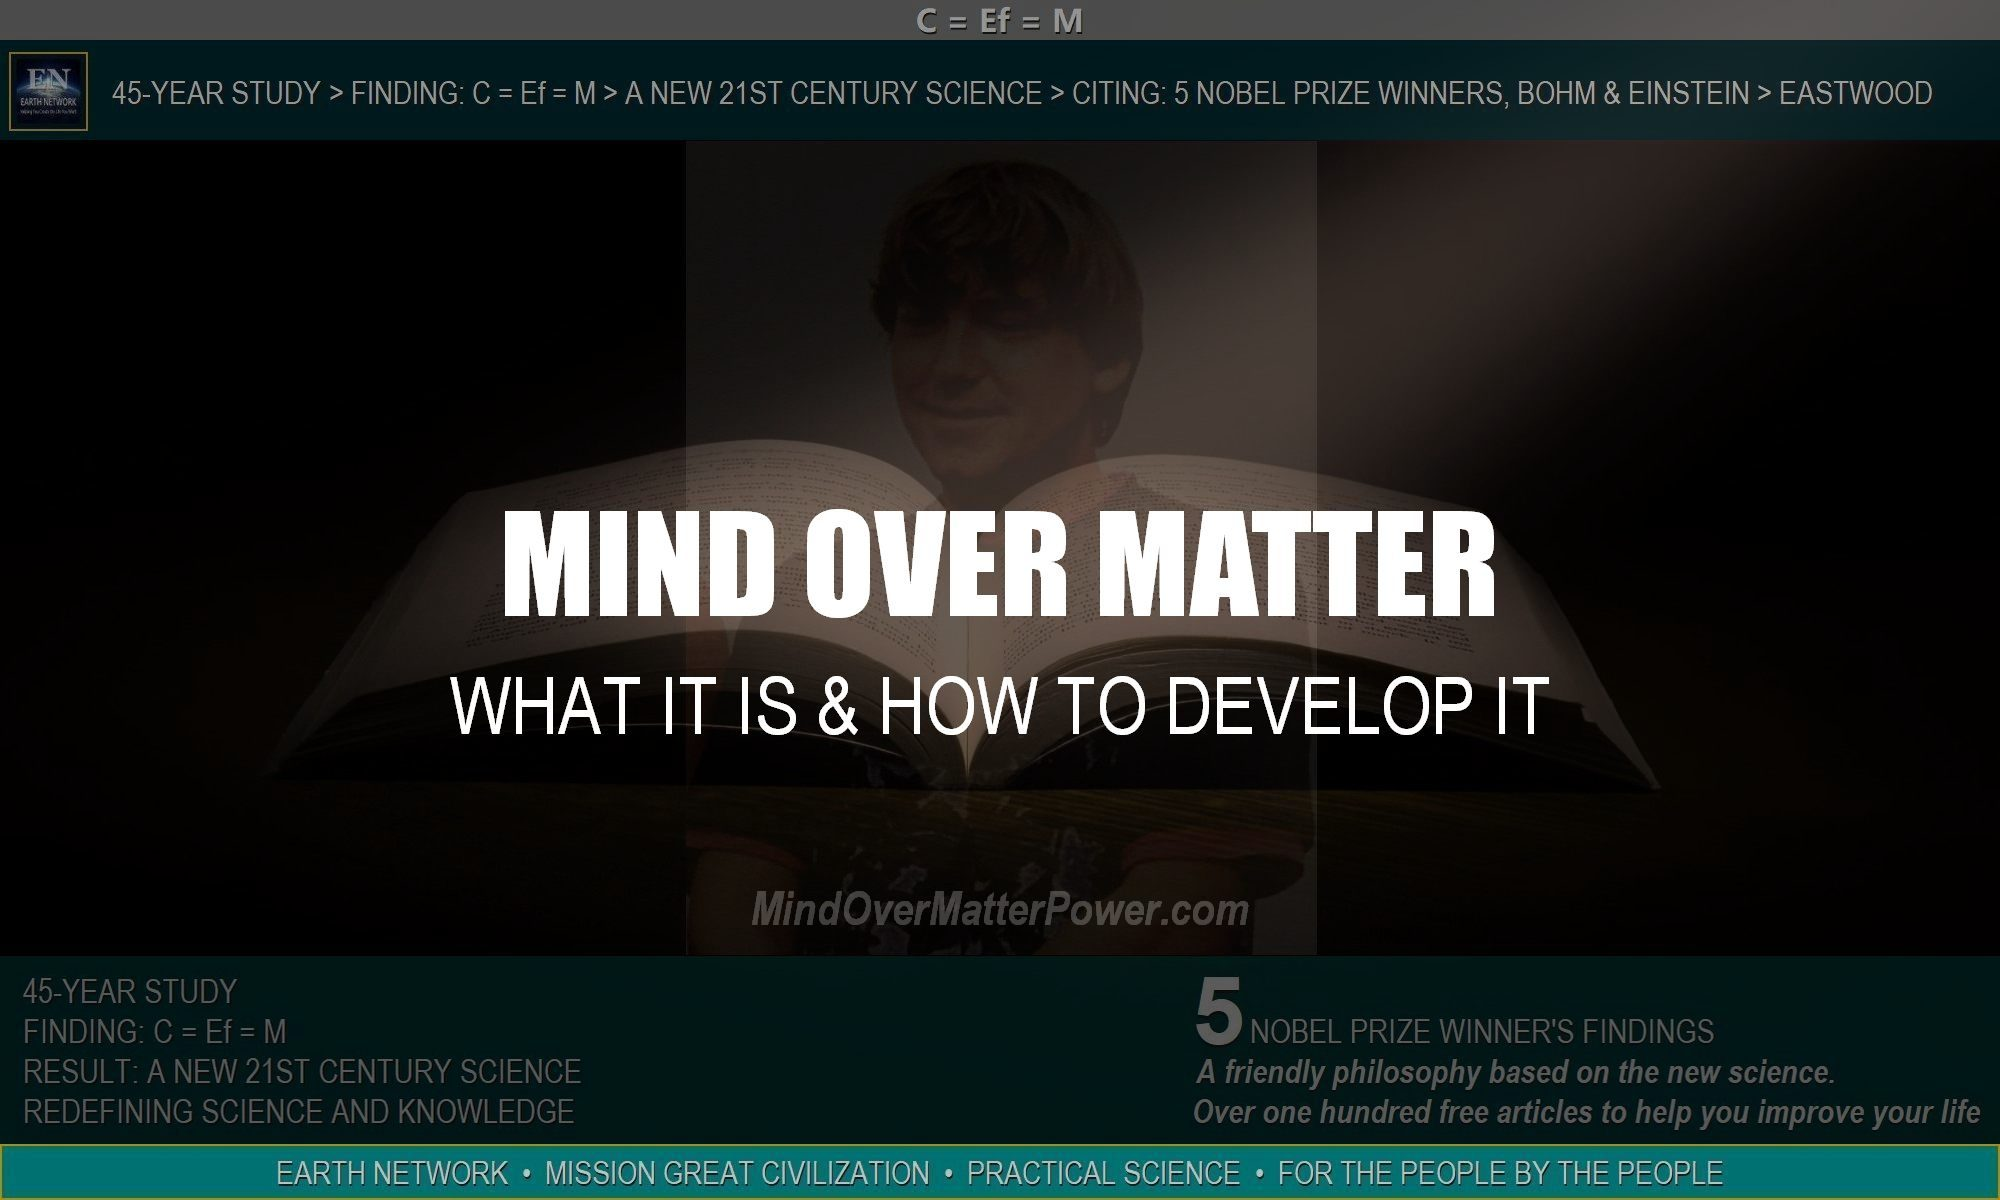 William Eastwood's story and 15 books are evidence and proof of mind over matter. Learn what mind over matter really is.